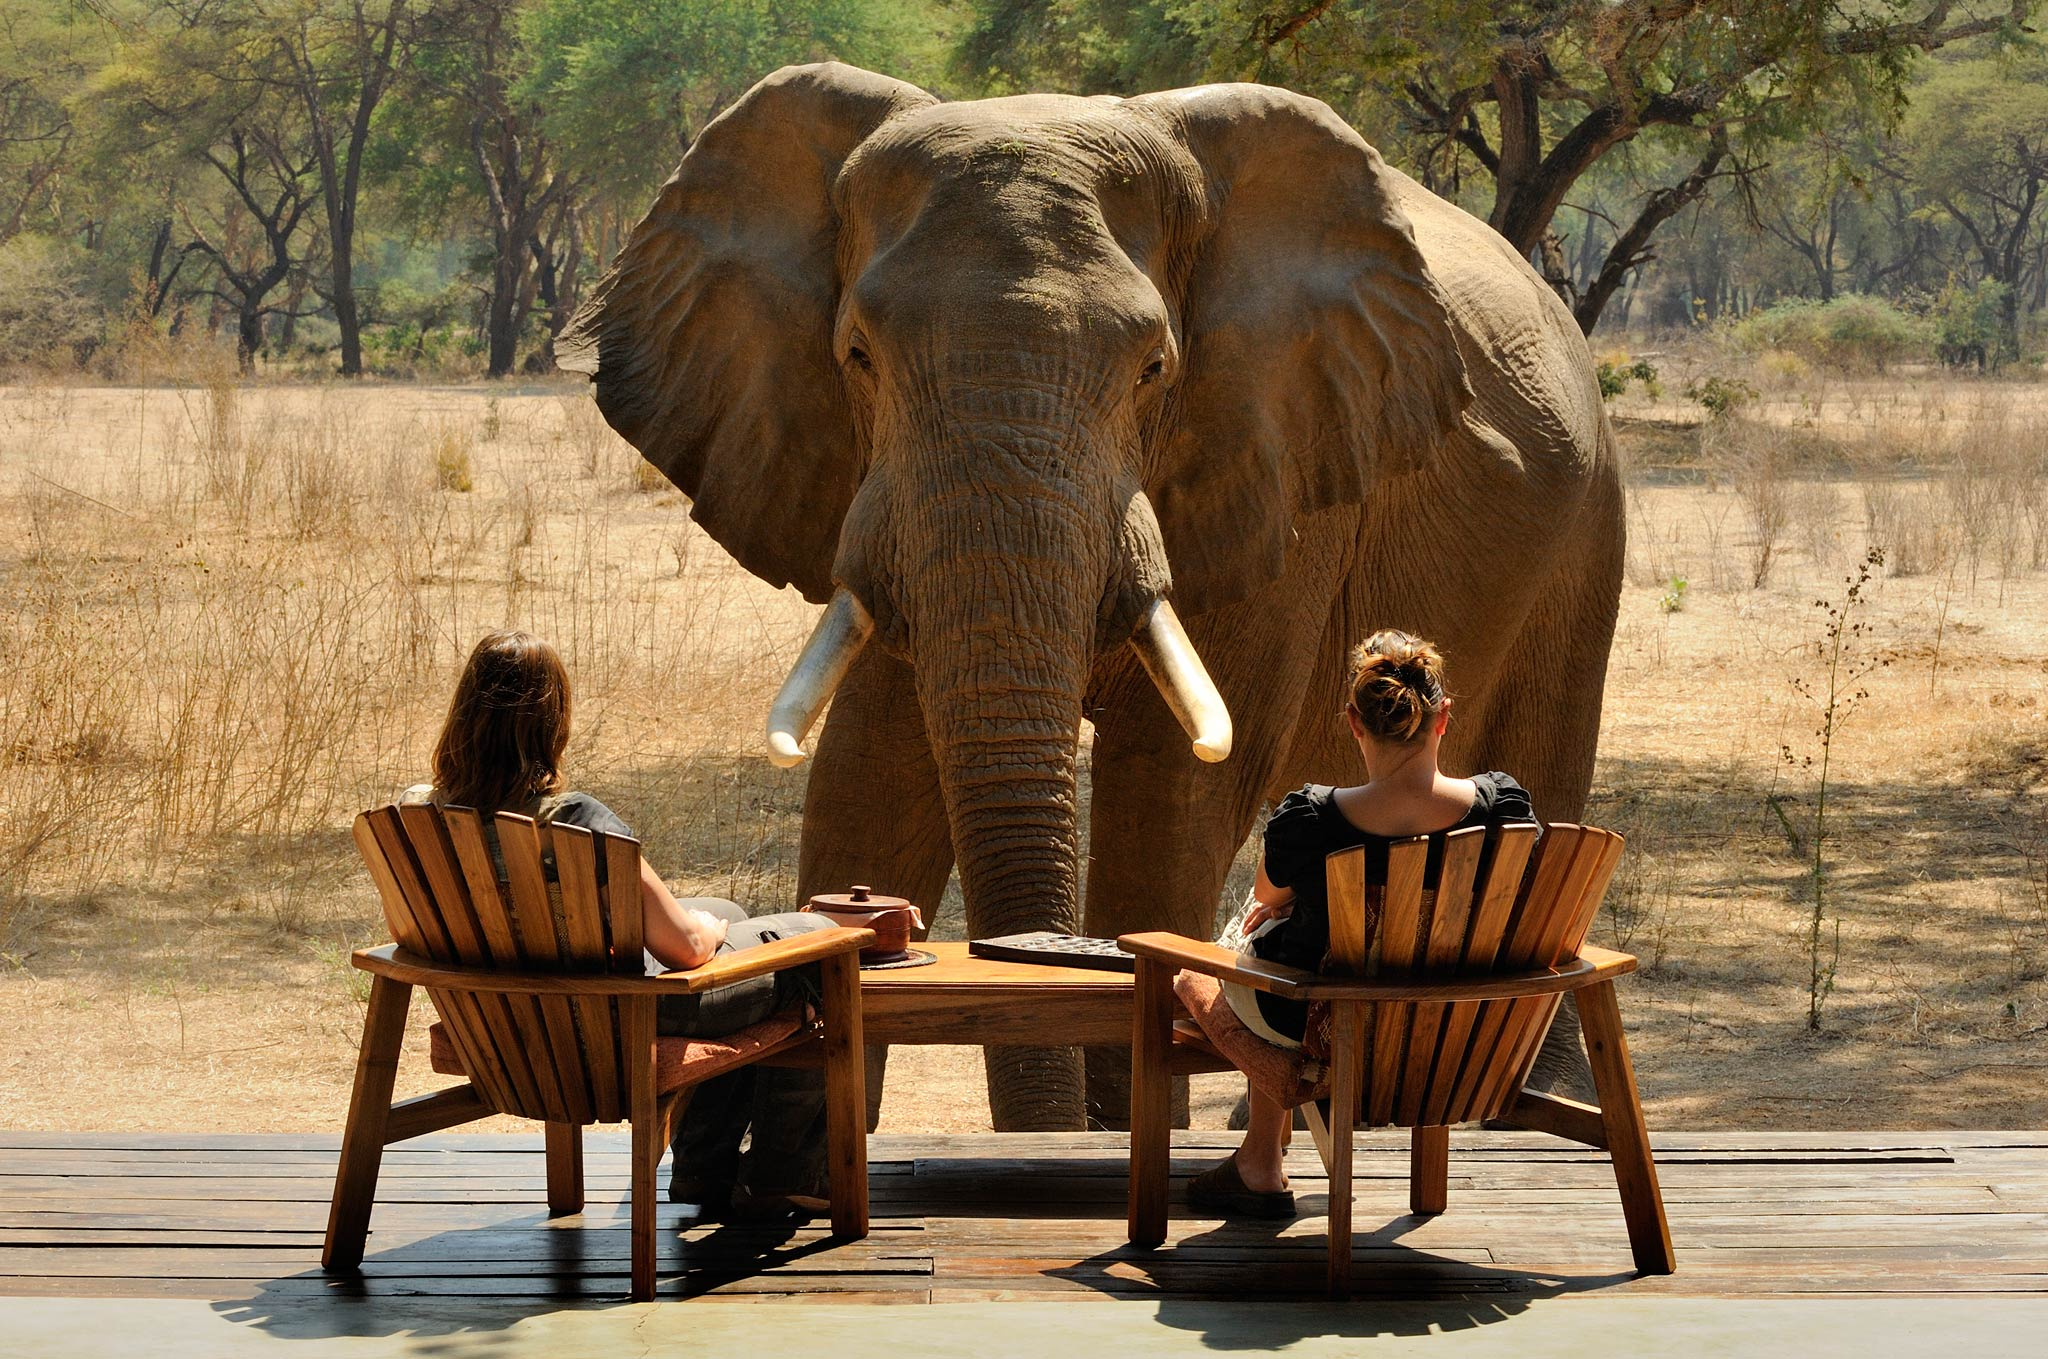 Elephant in front of two people at Old Mondoro Lodge (Photo by Marsel van Oosten)